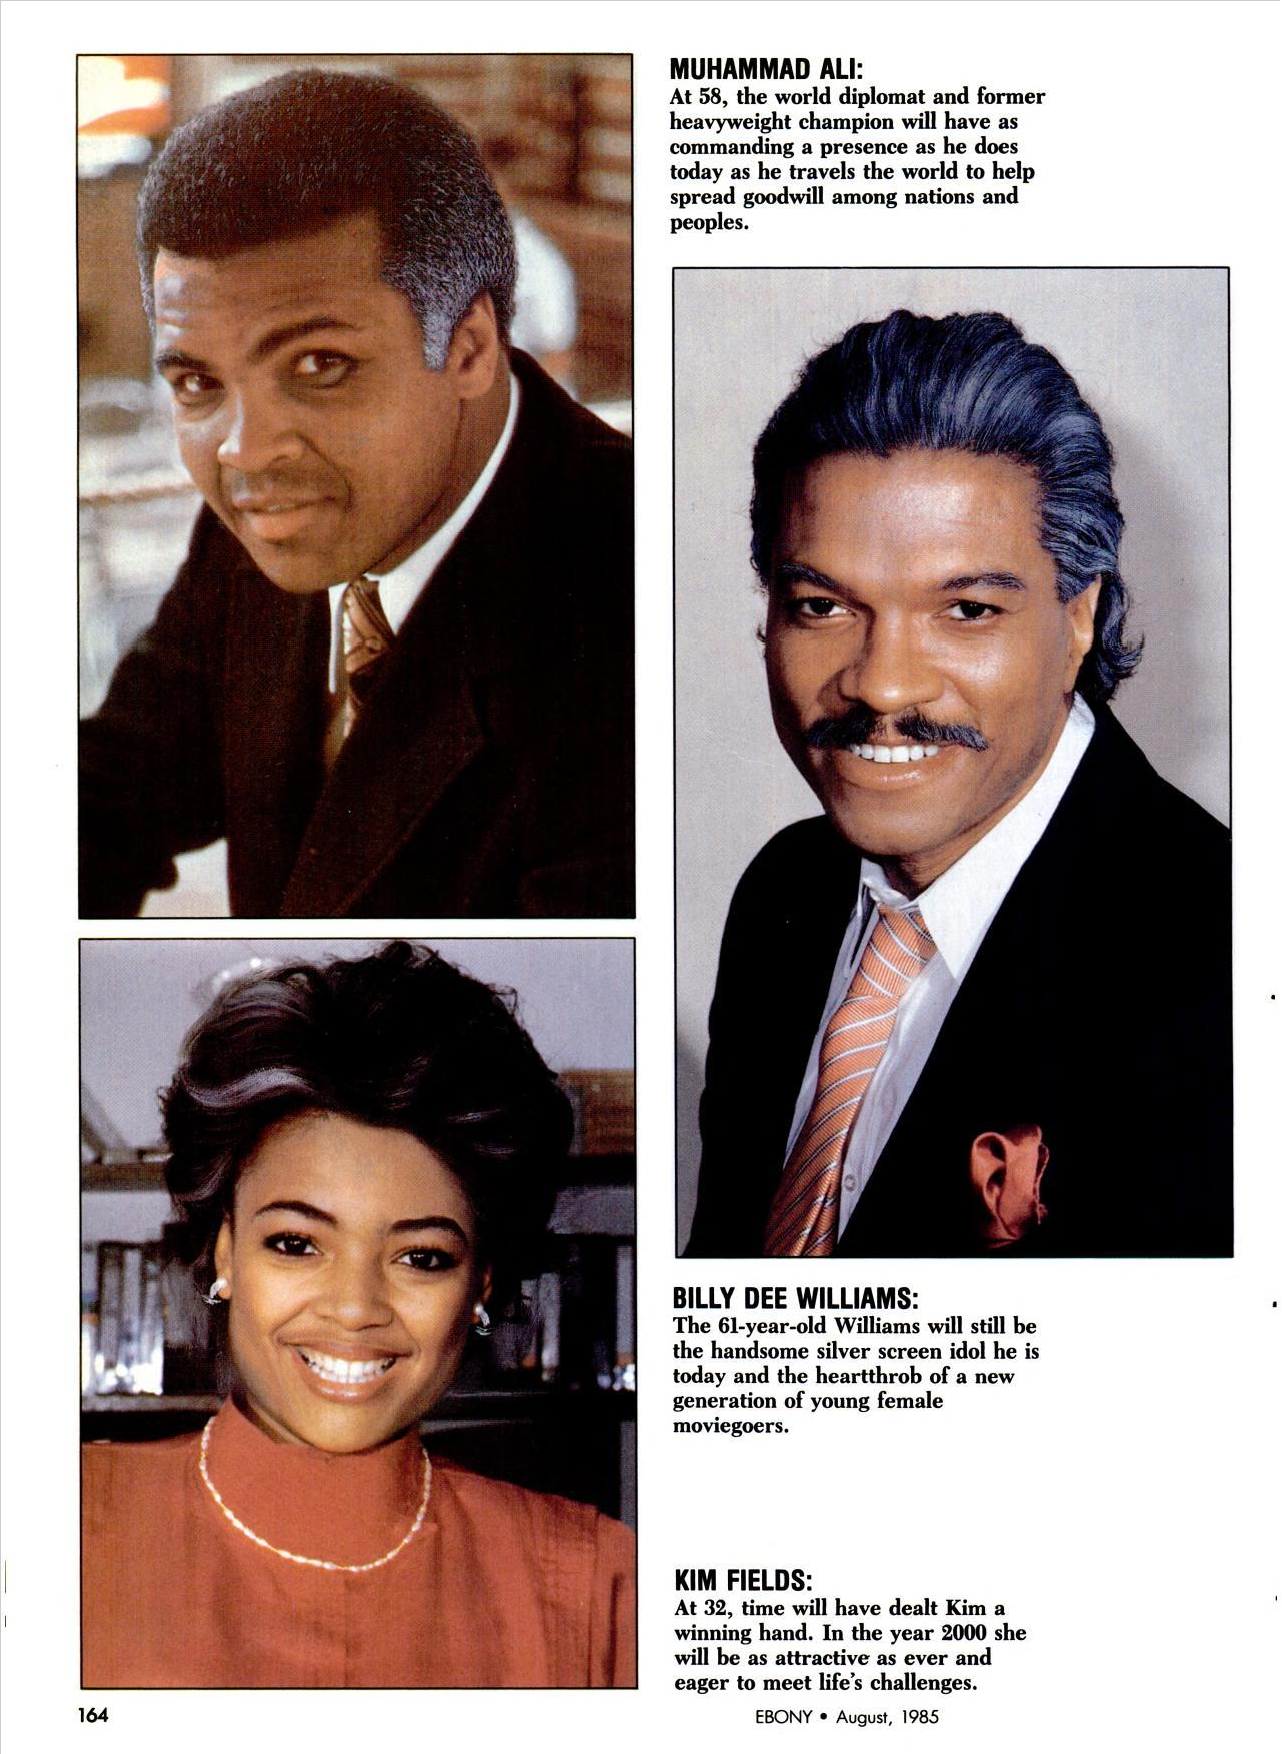 1985 ebony magazine reveals what michael jackson will look like in